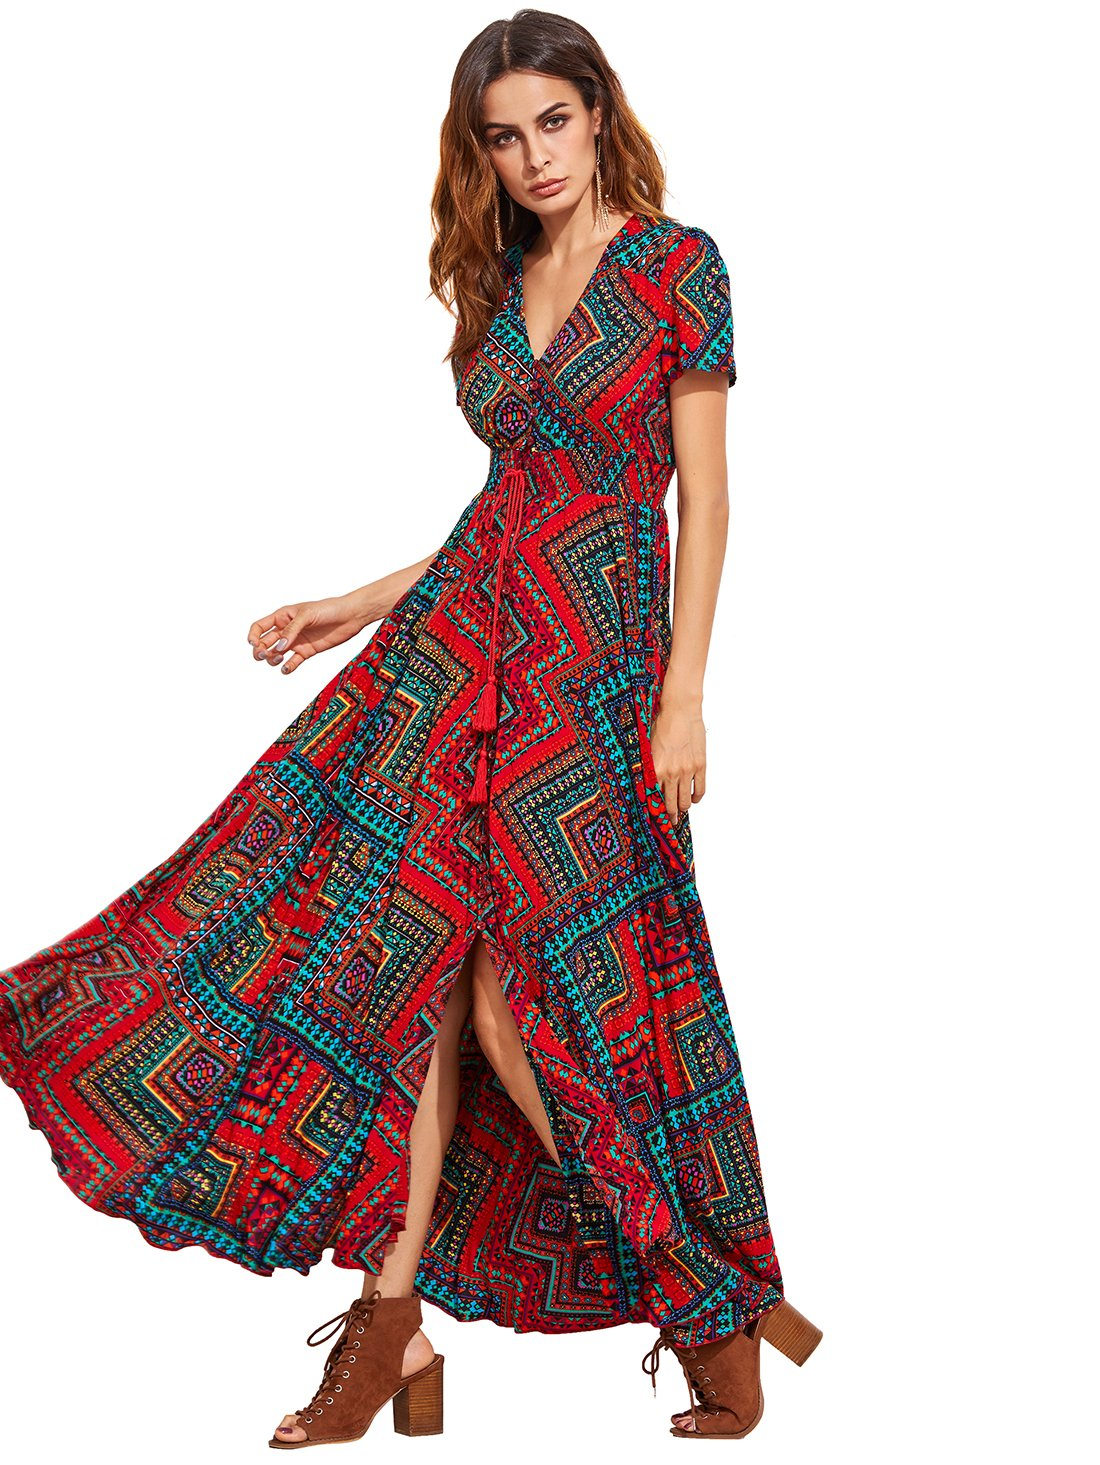 71662b02ce8 Galleon - Milumia Women s Button Up Split Floral Print Flowy Party Maxi  Dress X-Large Red Turquoise